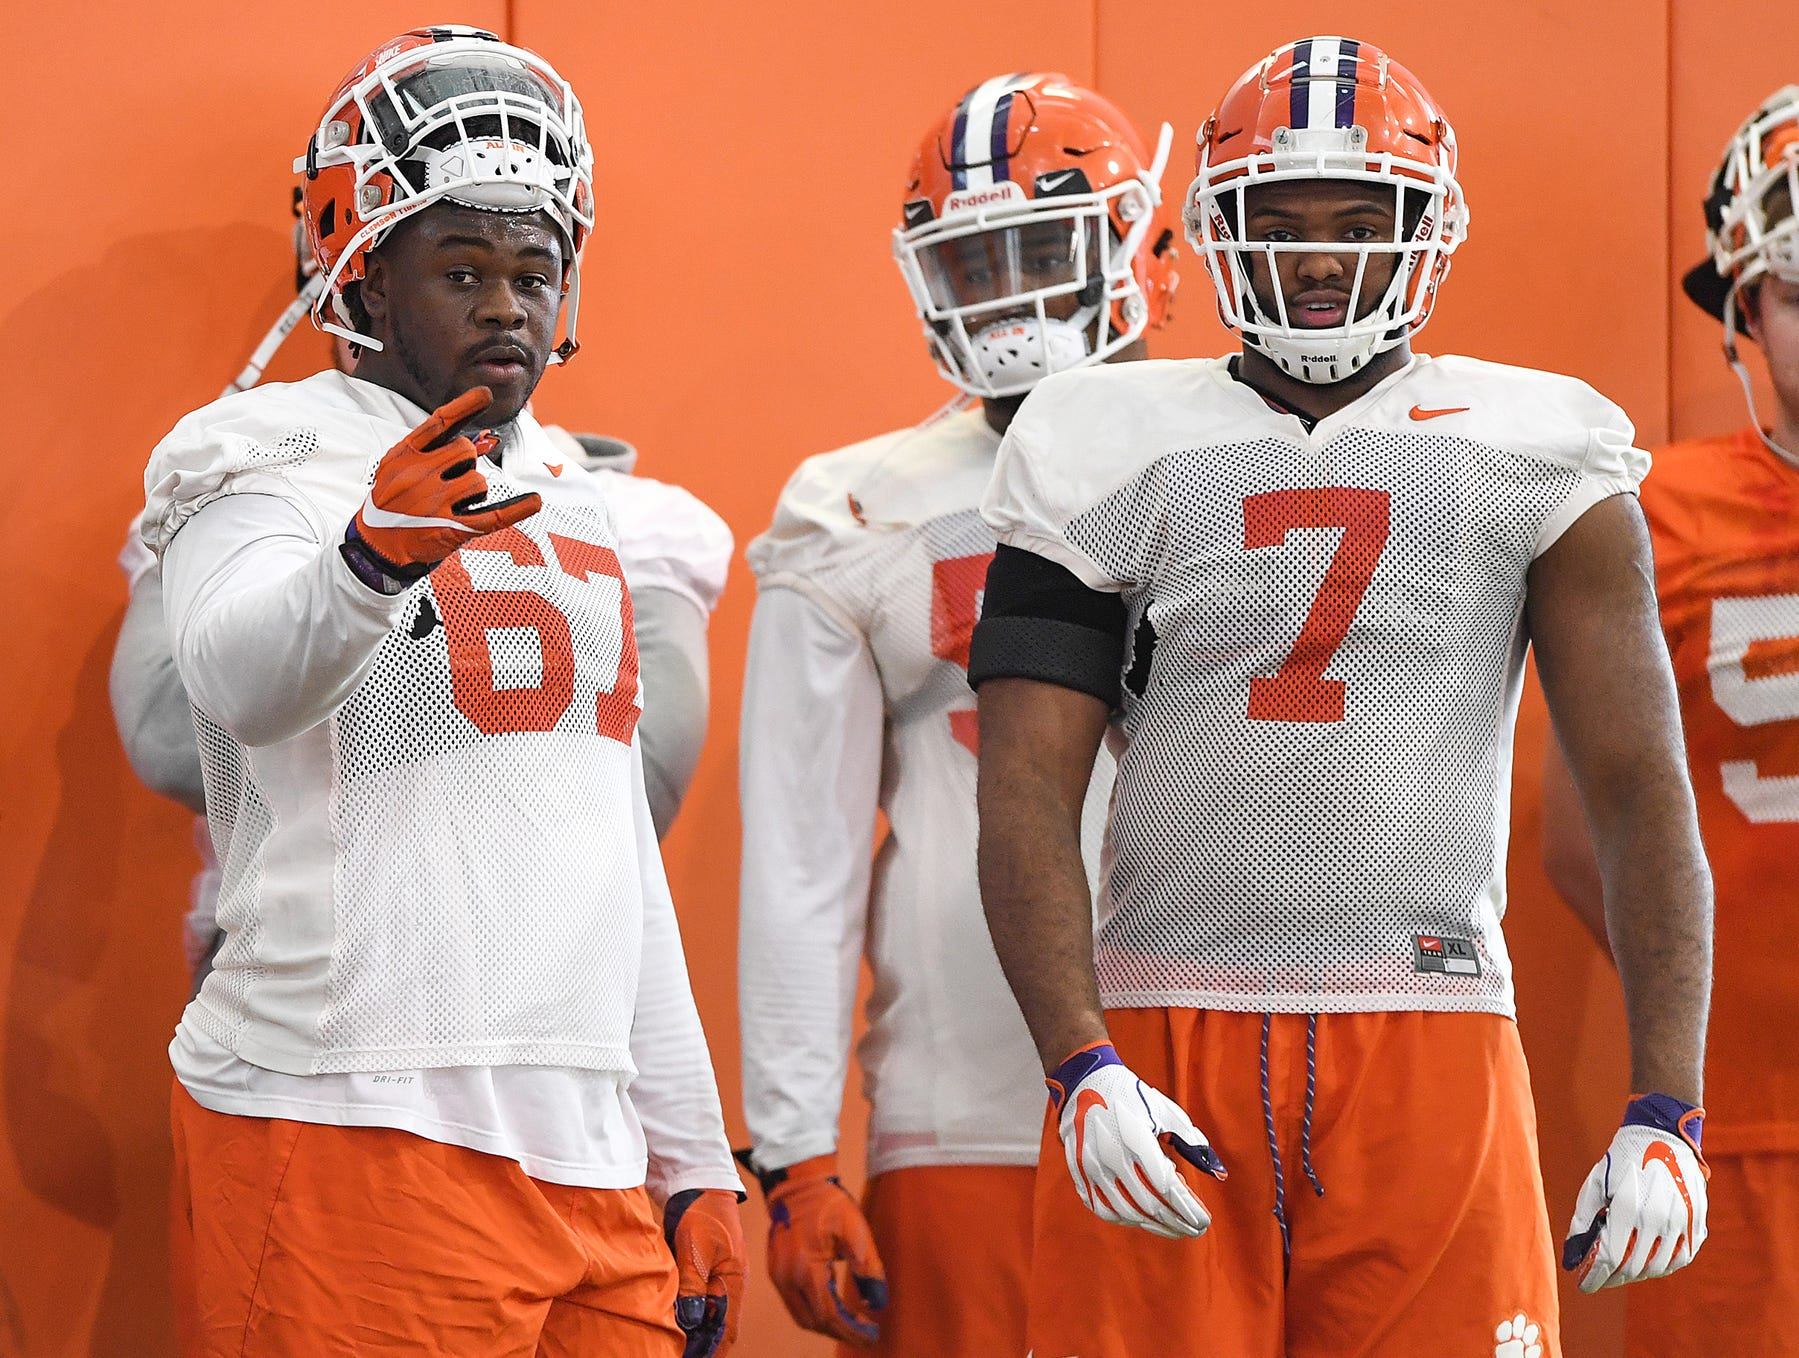 Clemson defensive linemen Albert Huggins (67), left, and Austin Bryant (7) during the Tigers Cotton Bowl practice on Wednesday, December 12, 2018.